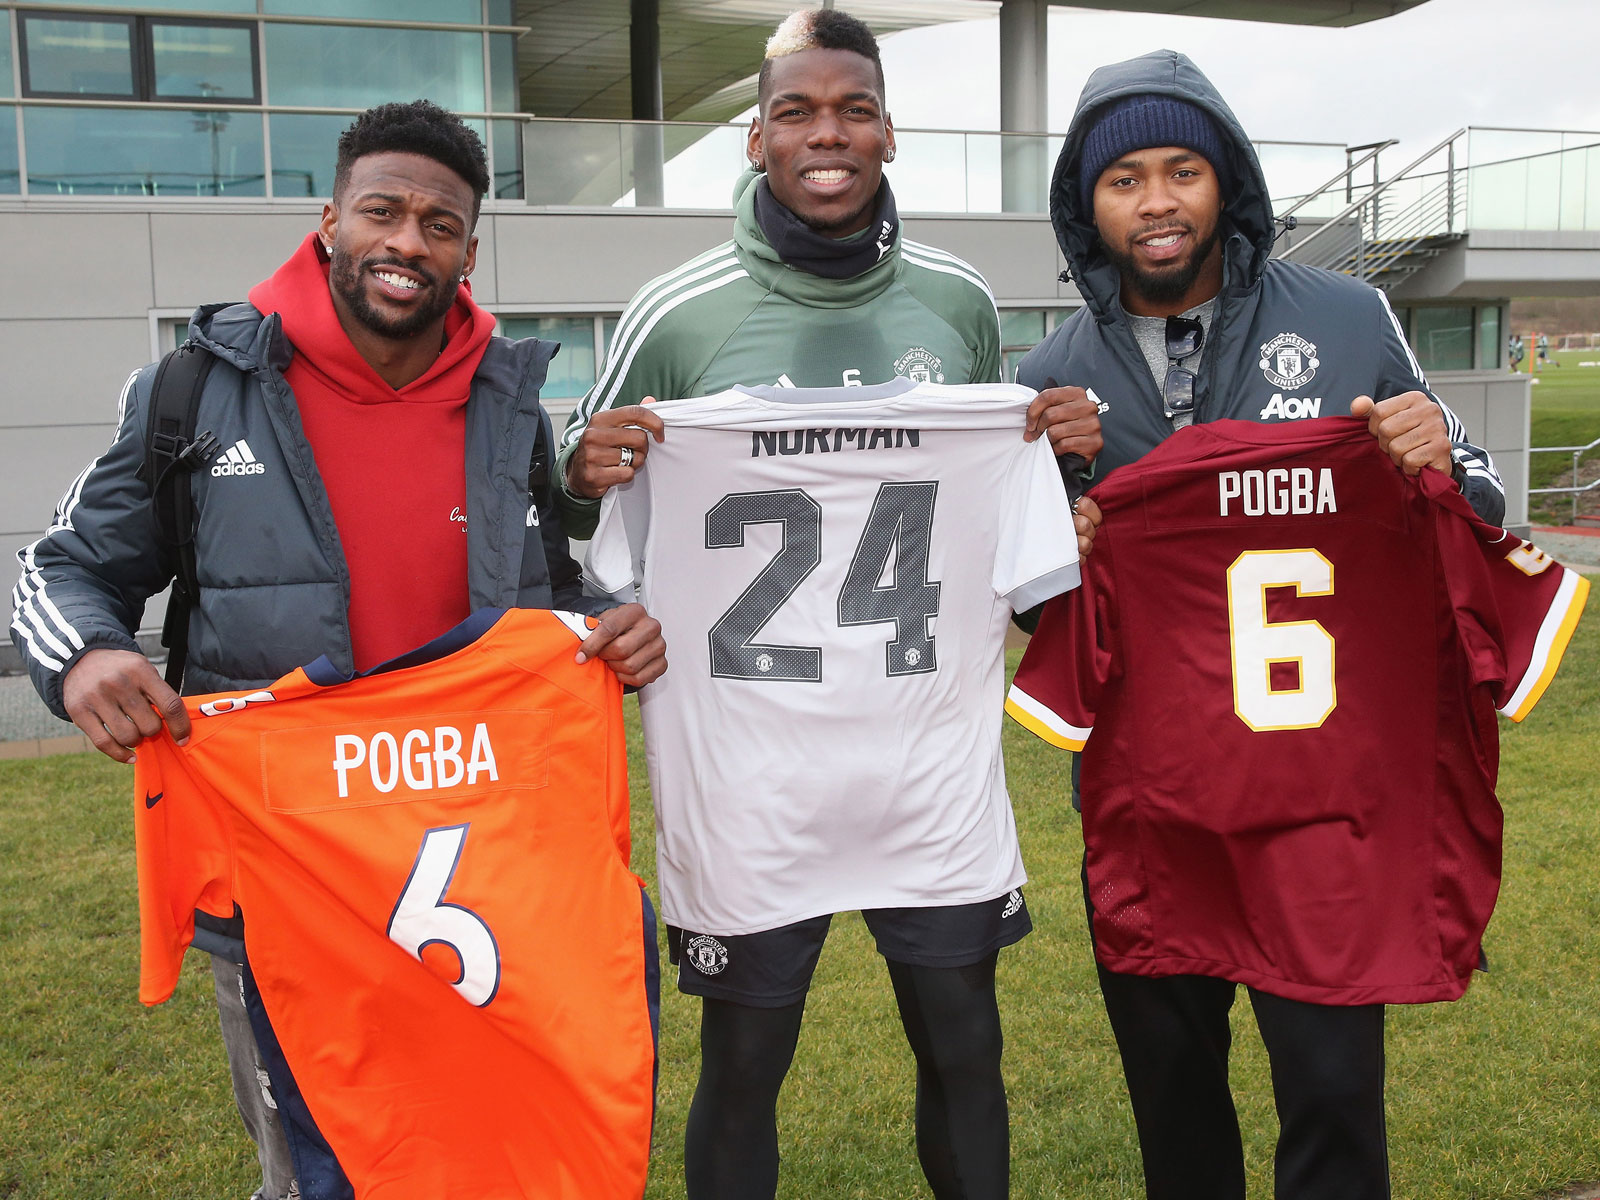 Emmanuel Sanders and Josh Norman pose with Paul Pogba at Manchester United's training ground